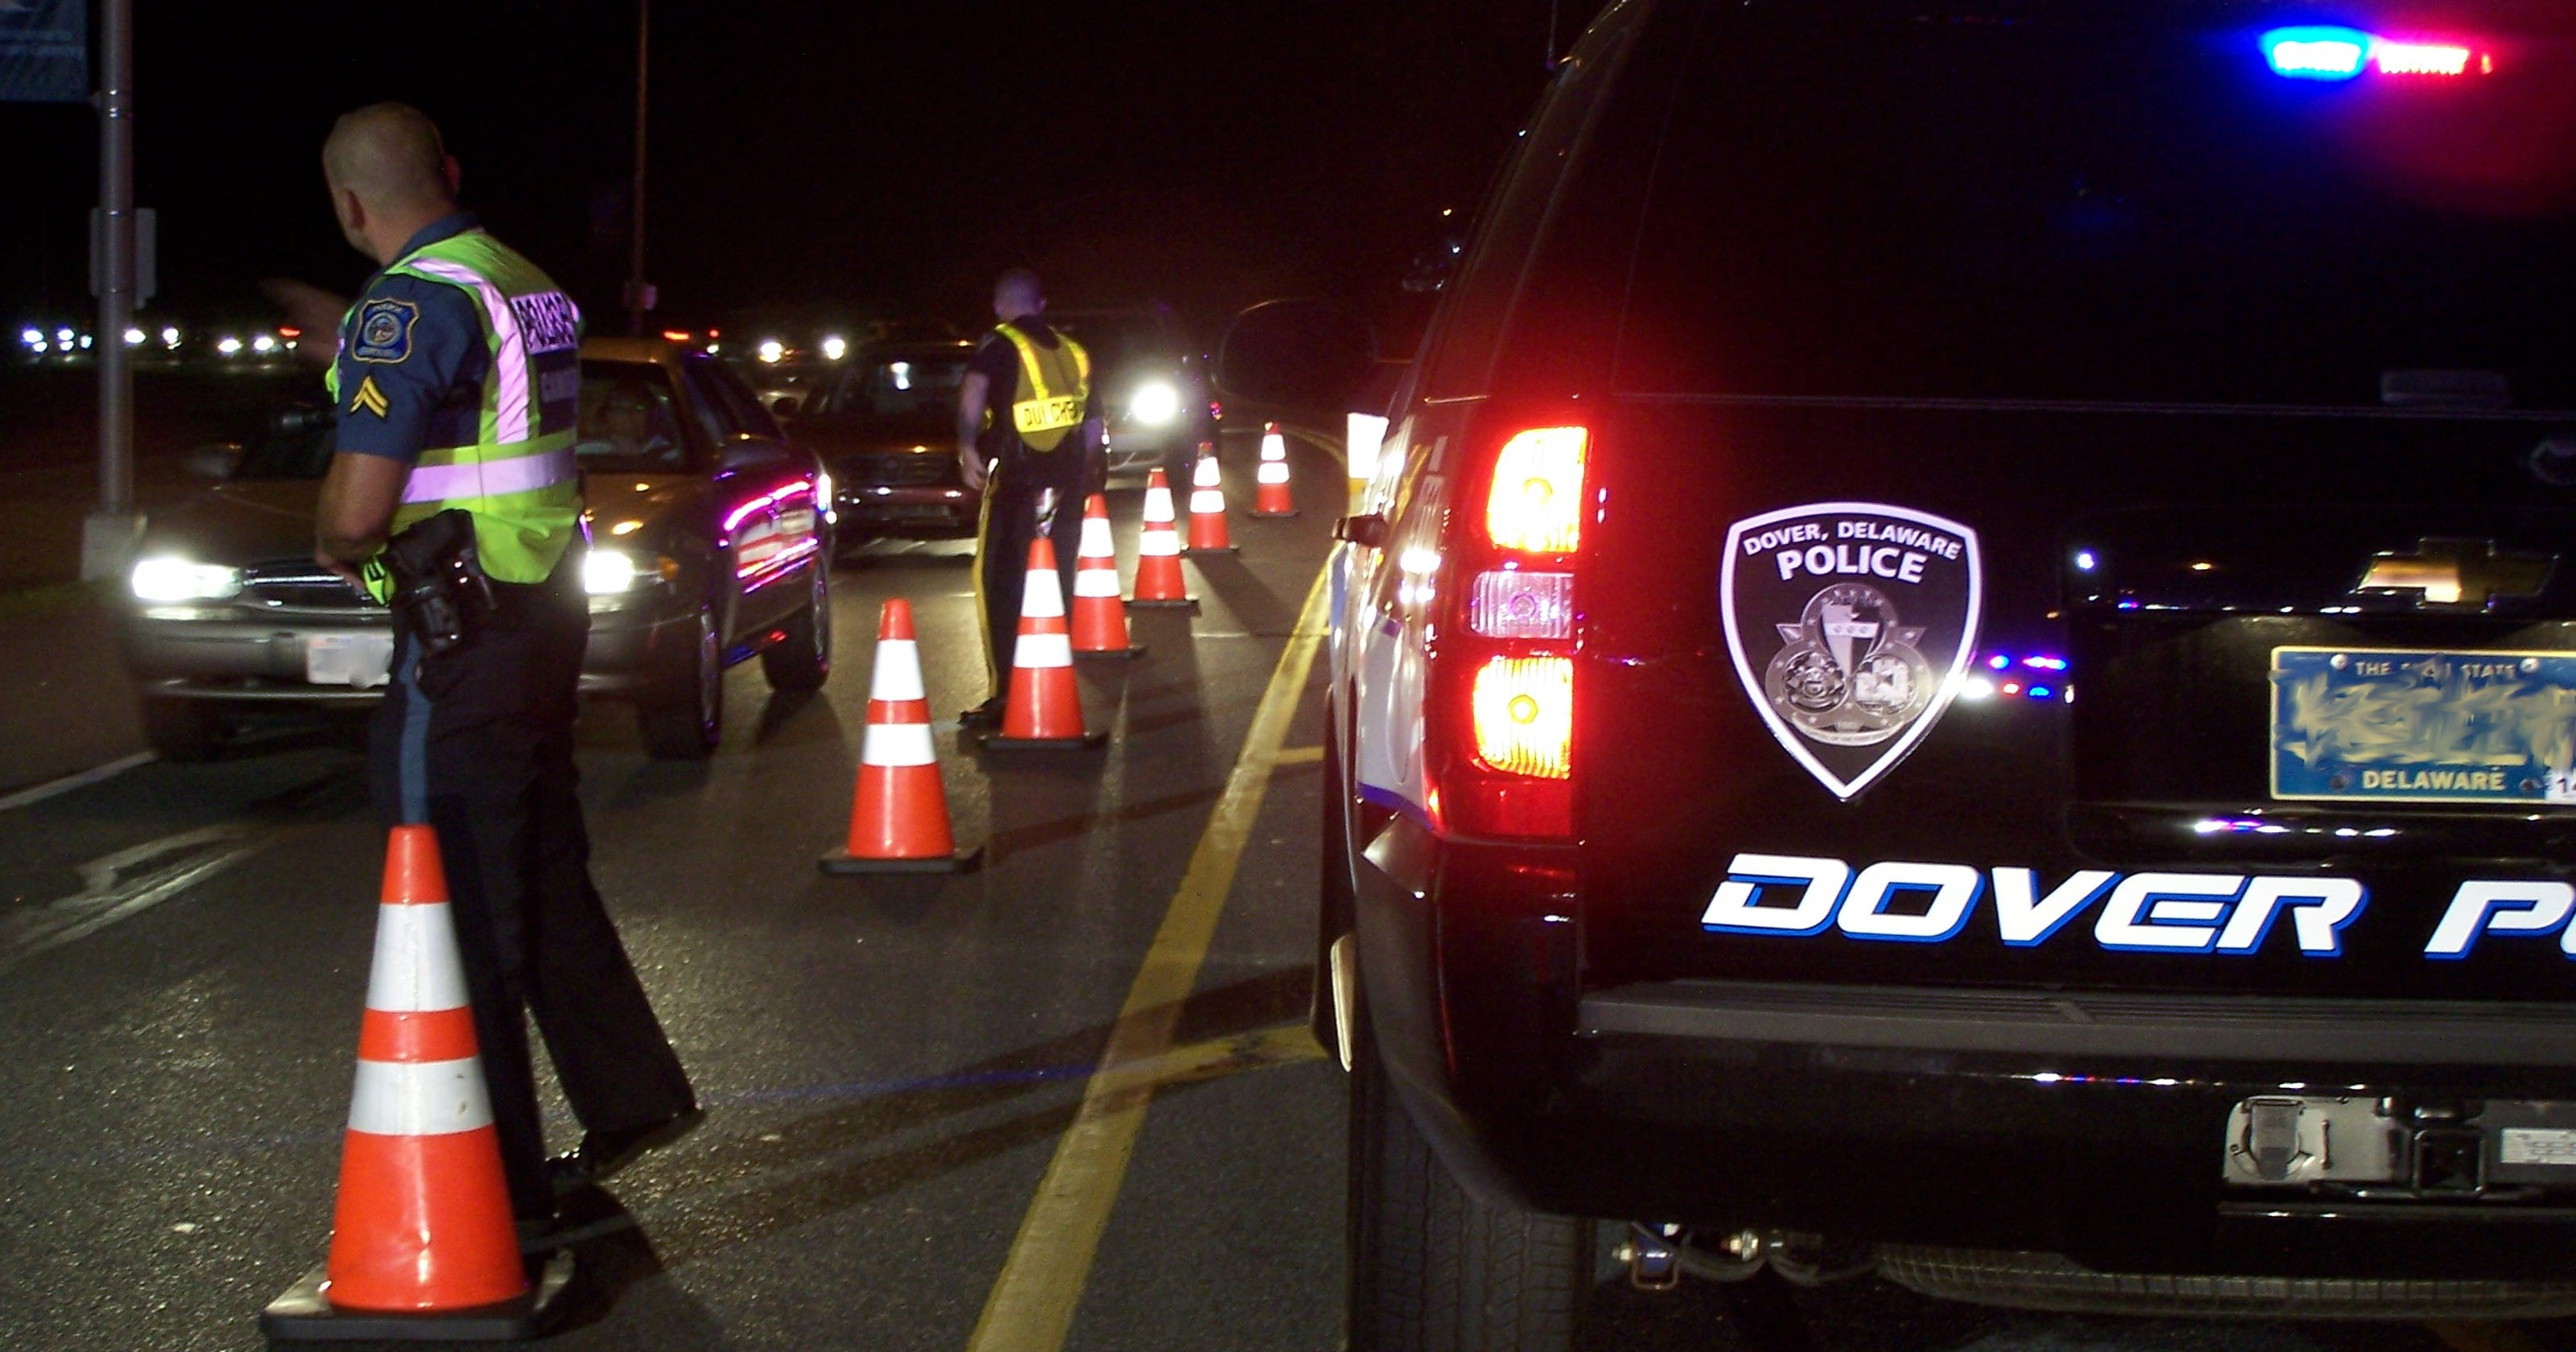 Drunk behind the wheel again: For one man, 12 DUI arrests